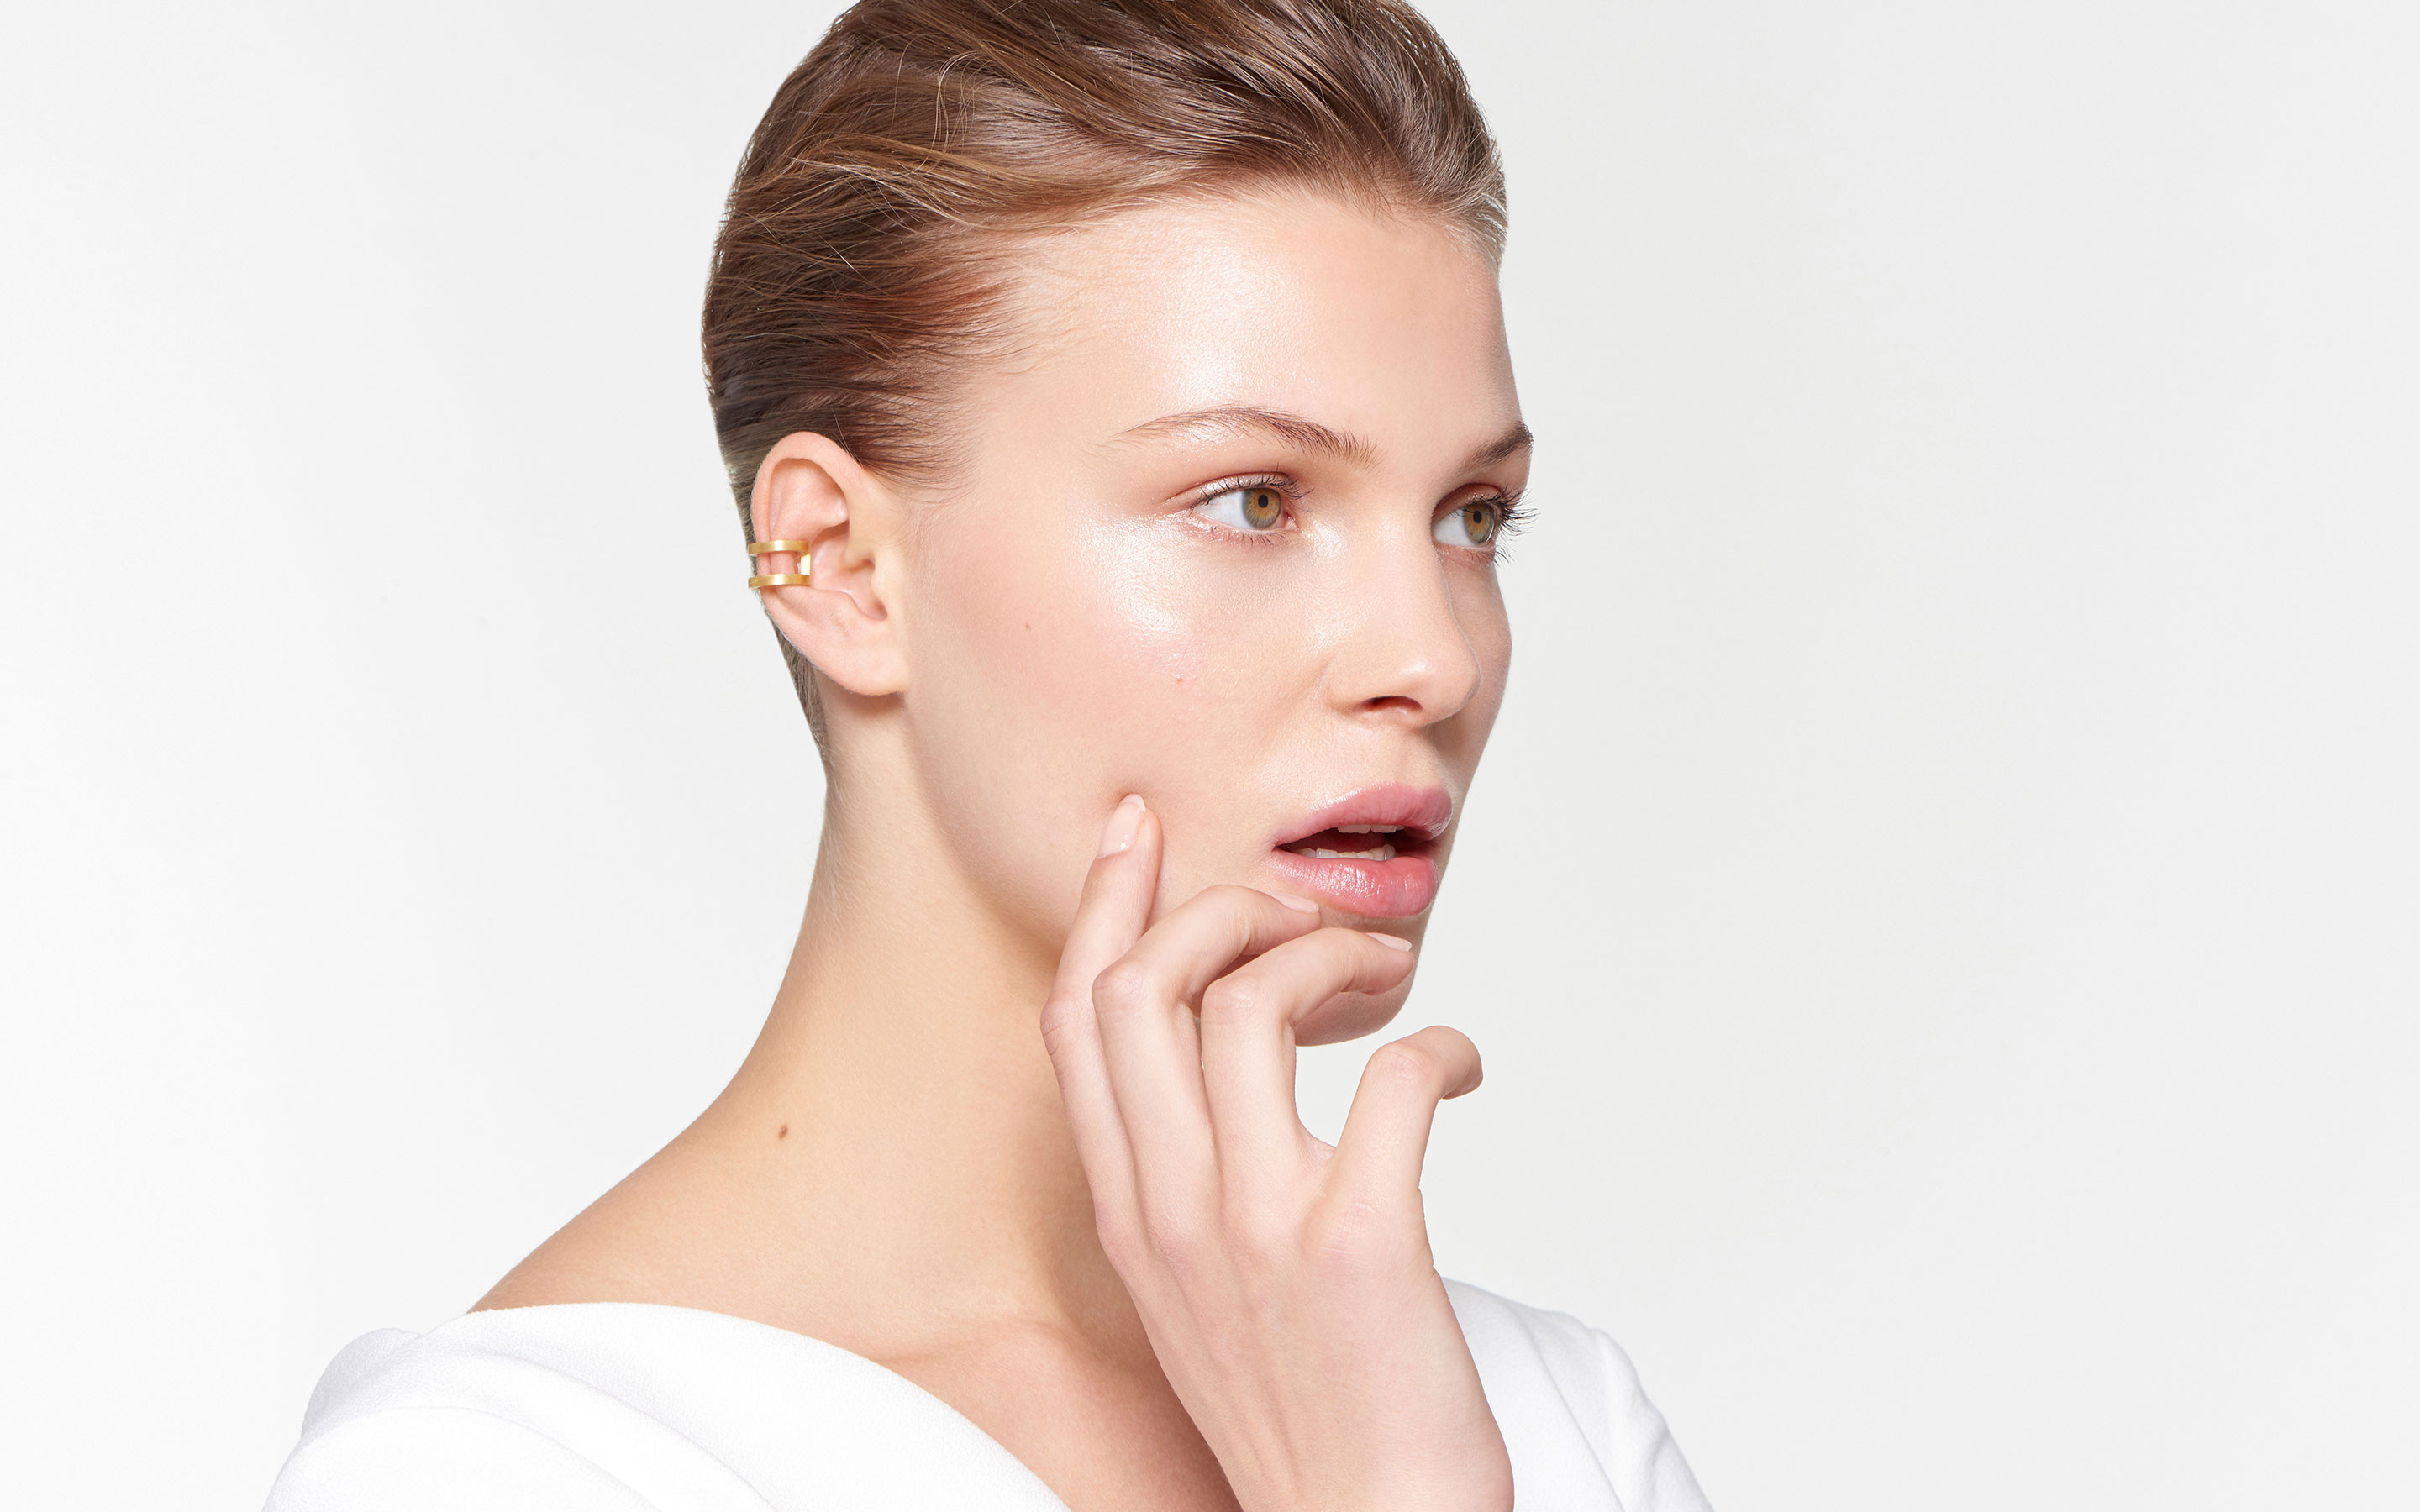 stylish model showcasing abstract ear cuff made of 22 karat satin gold